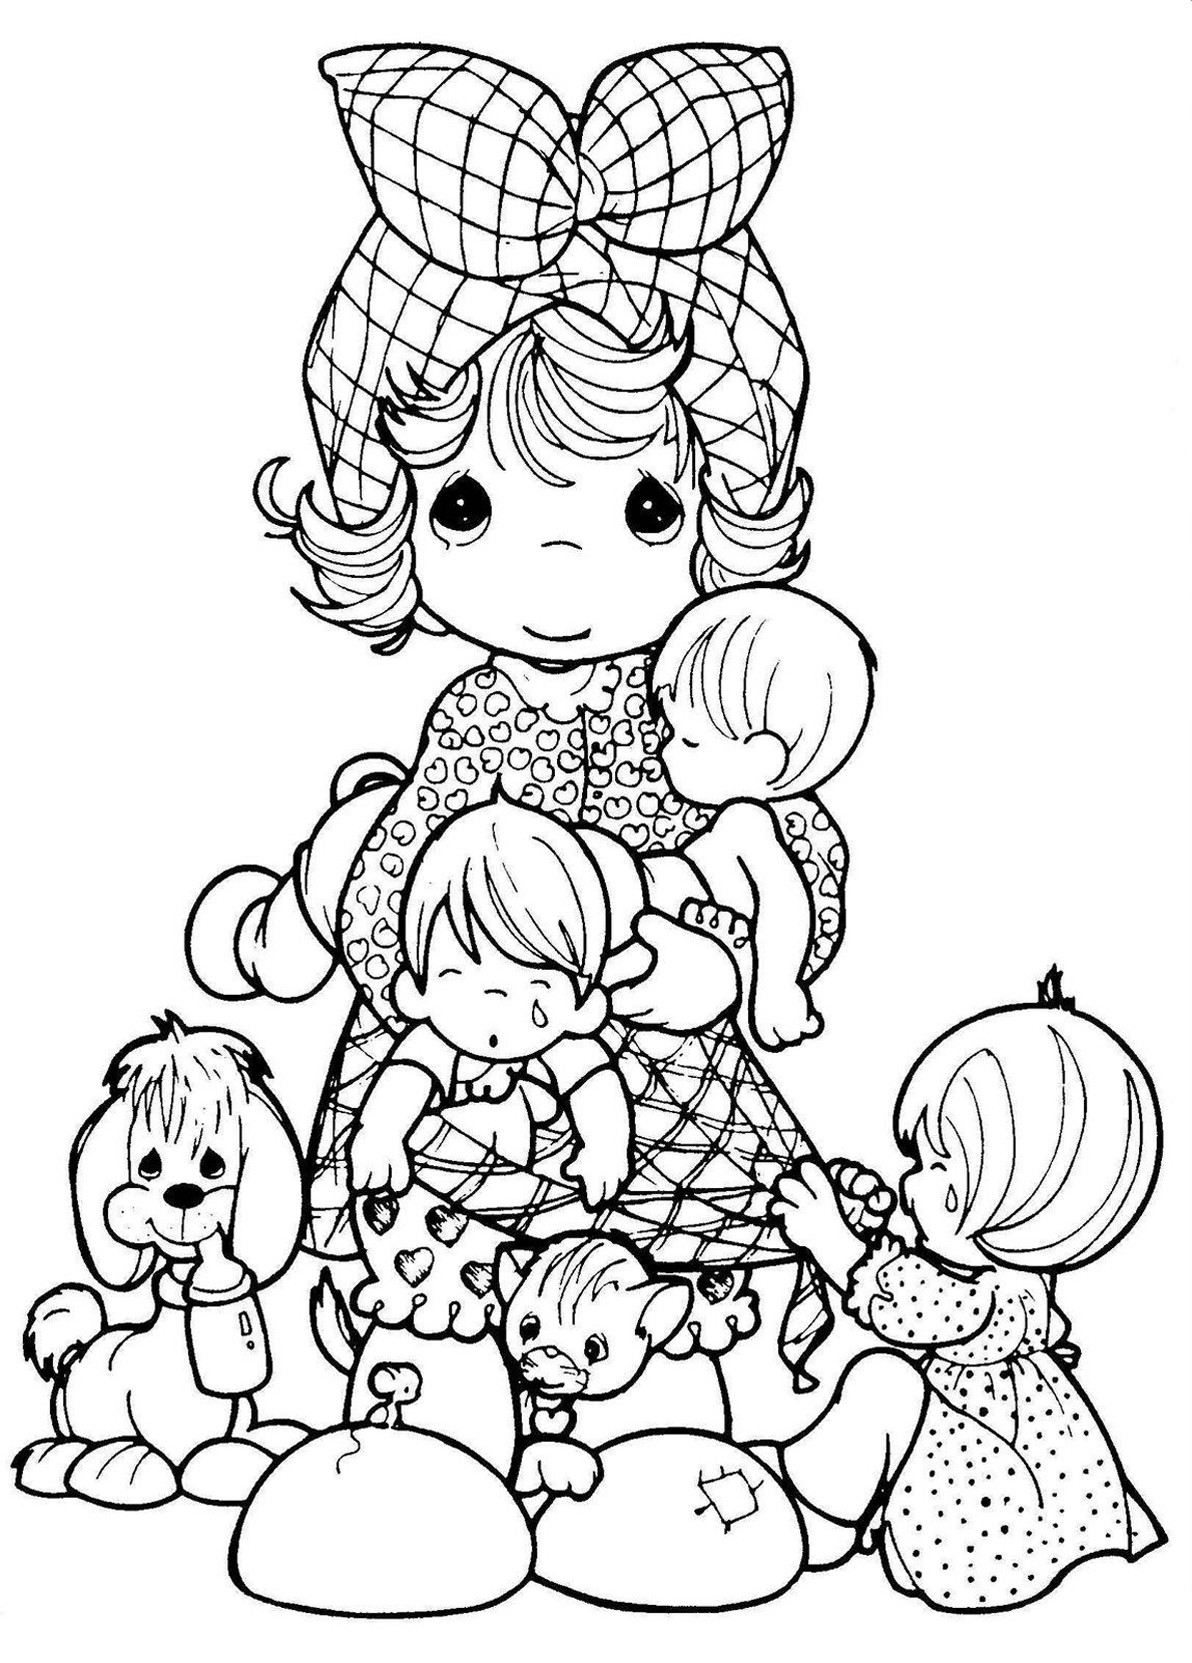 precious moments coloring pages printable precious moments coloring pages christmas coloring home printable pages precious coloring moments